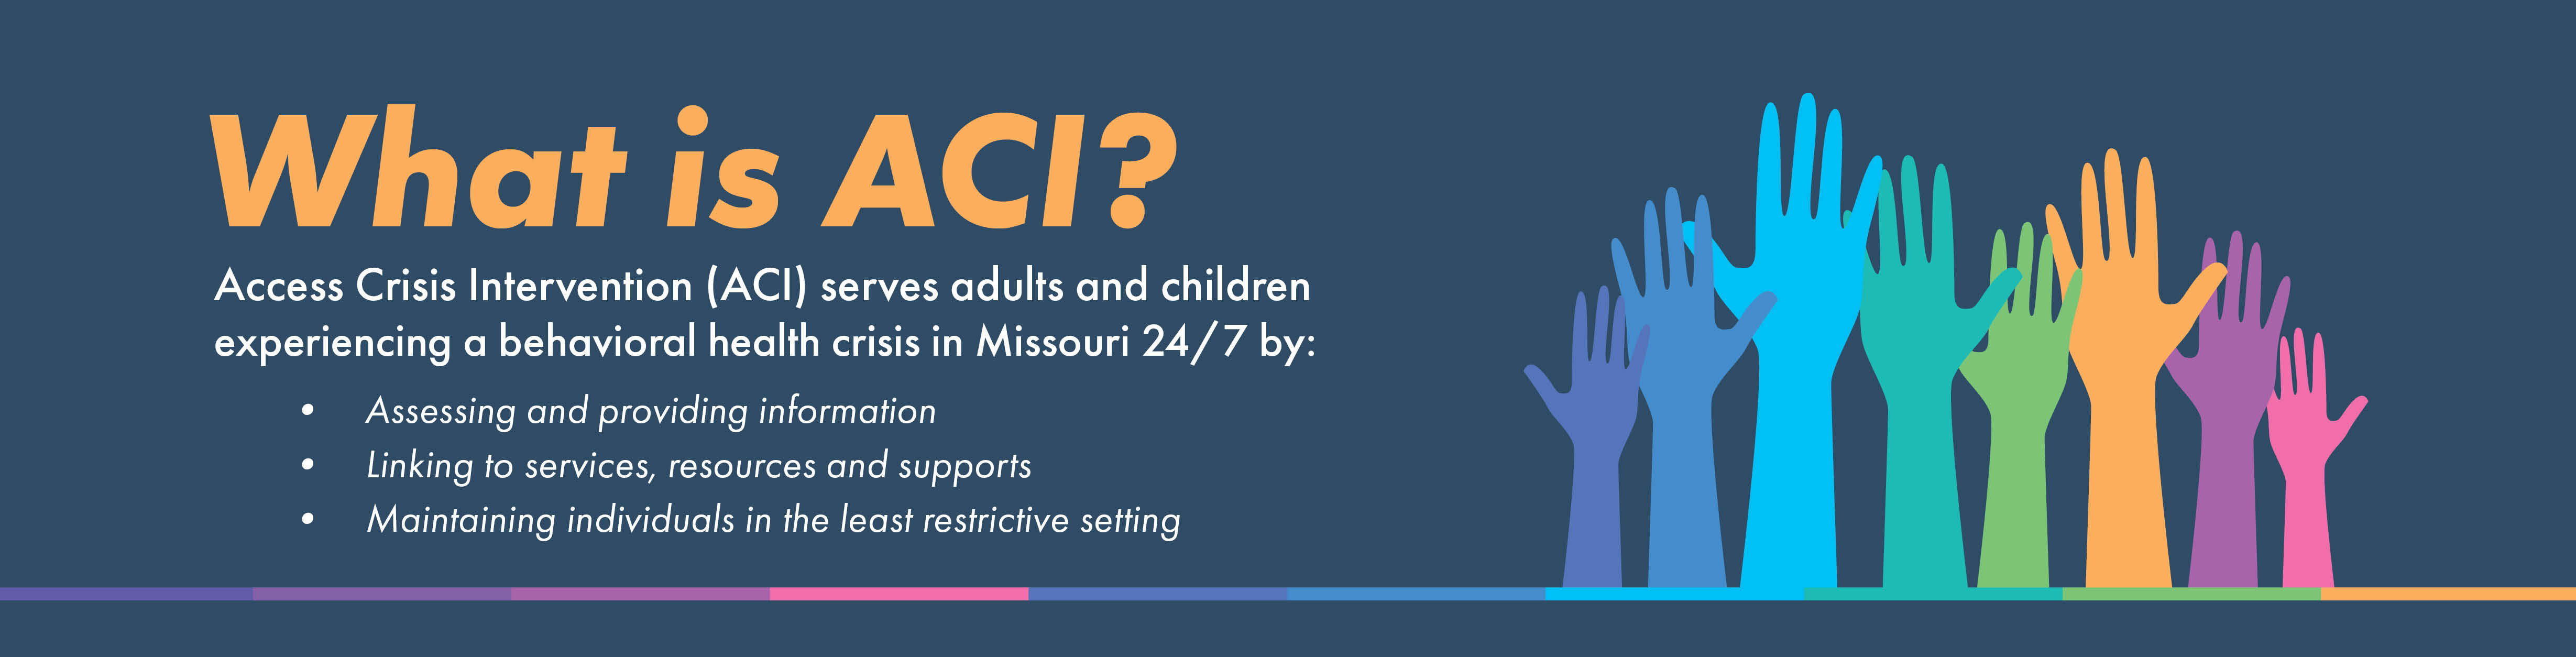 What is ACI?  Access Crisis Intervention (ACI) serves adults and children experiencing a behavioral health crisis in Missouri 24/7 by: Assessing and providing information; Linking to services, resources and supports; maintaining individuals in the least restrictive setting.